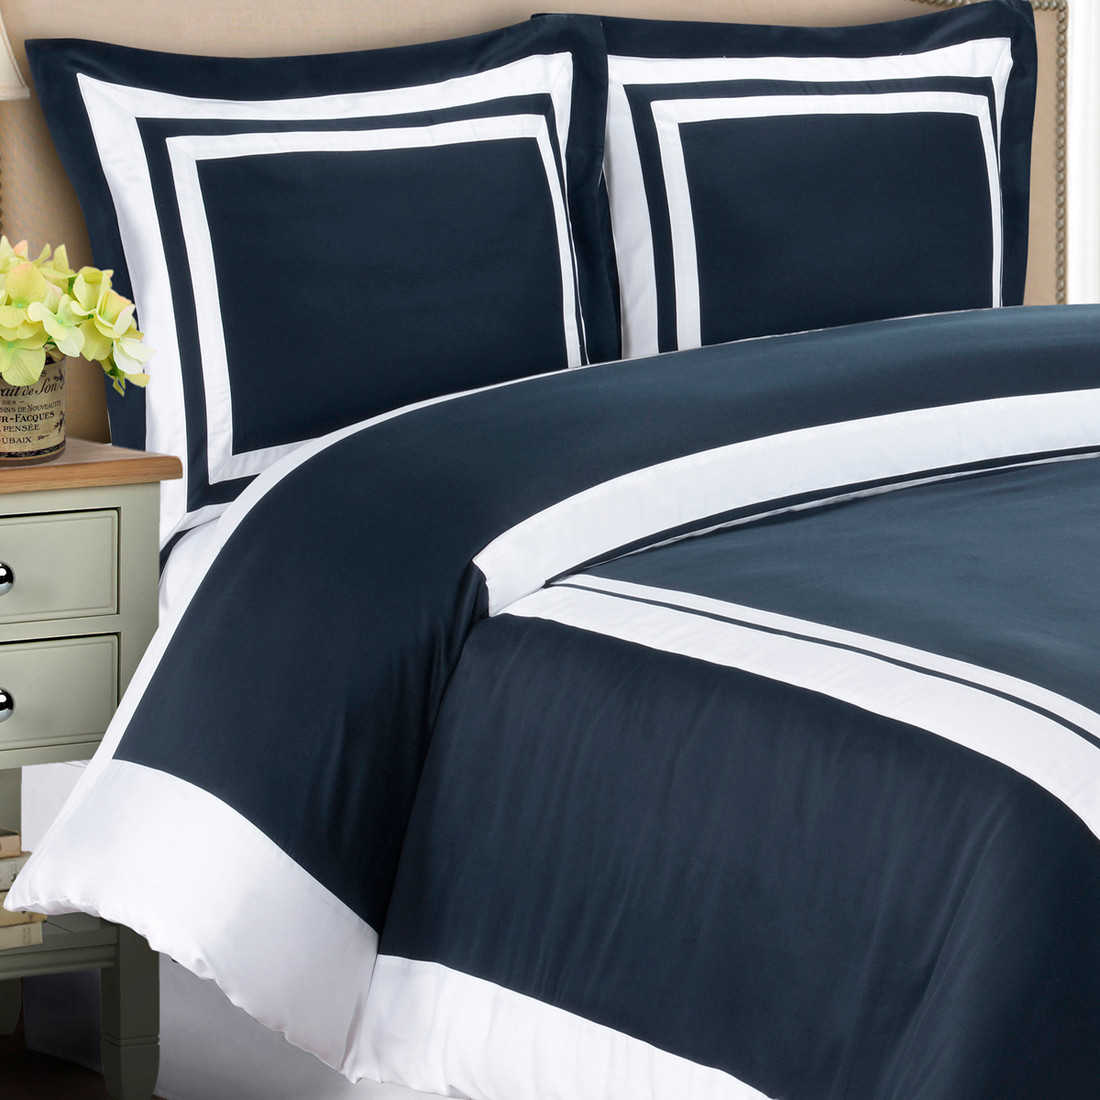 hotel 100 cotton duvet cover set image navywhite